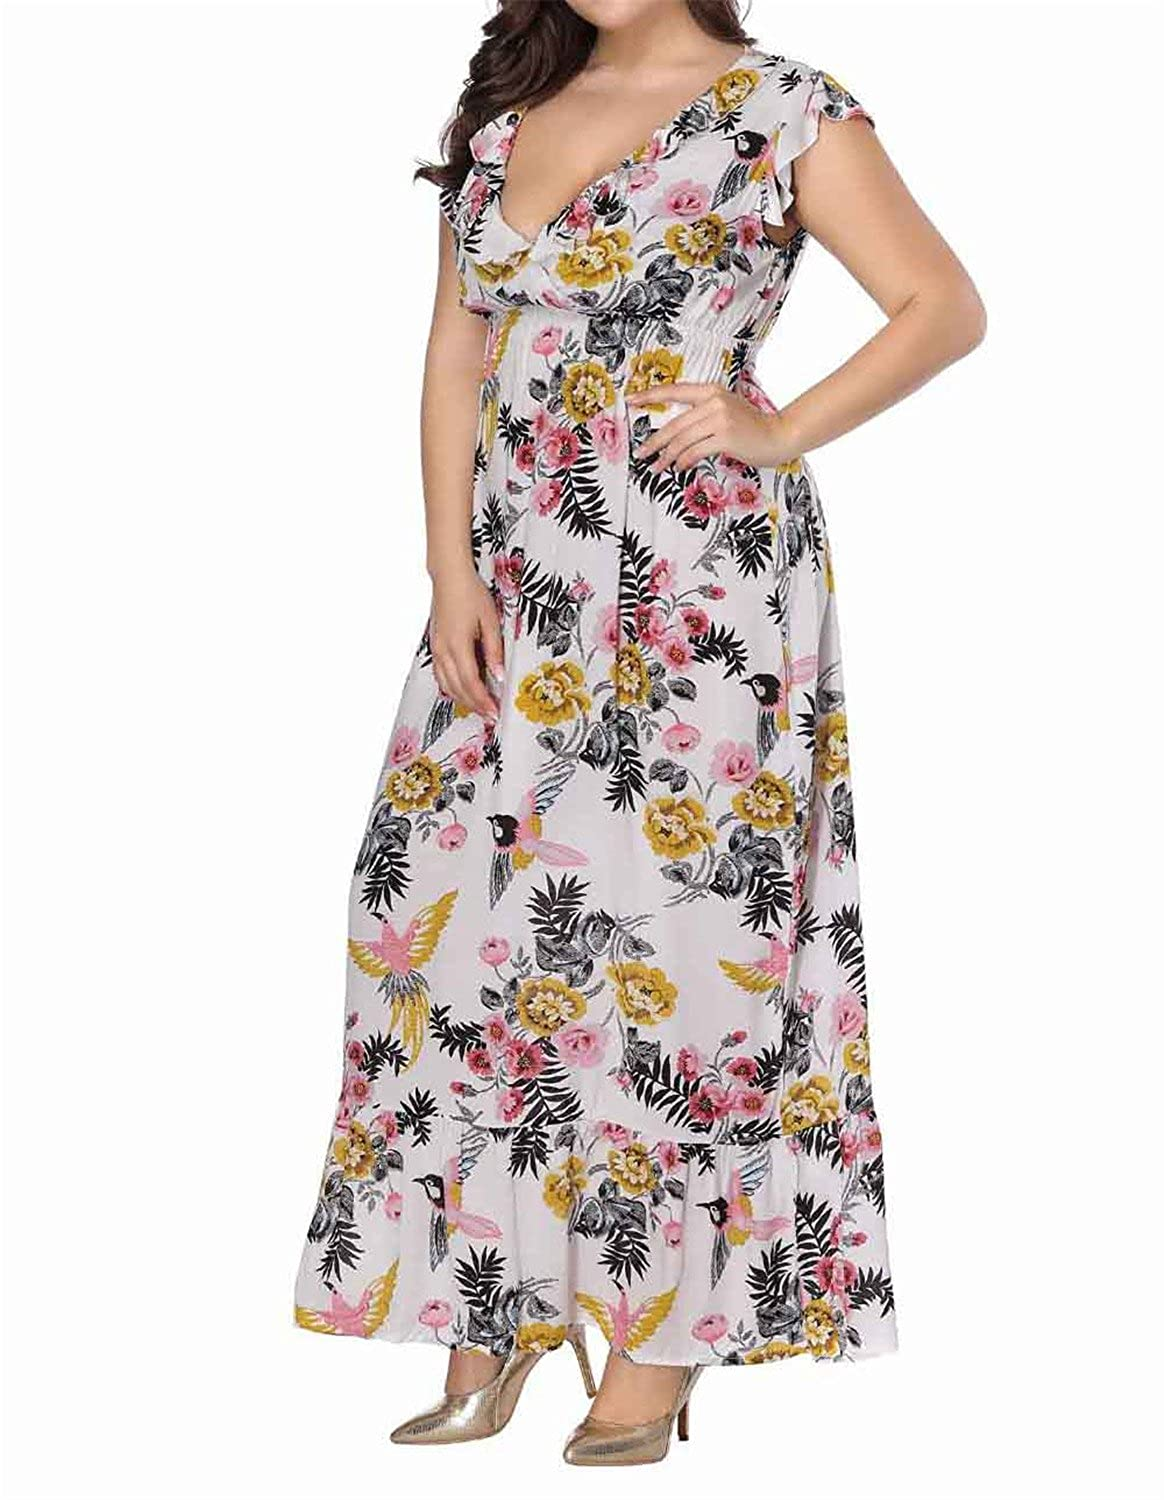 Aworth Maxi Ruffles Print Plus Size Dress Large Size Vacation Long Evening Party Dress V-Neck at Amazon Womens Clothing store: